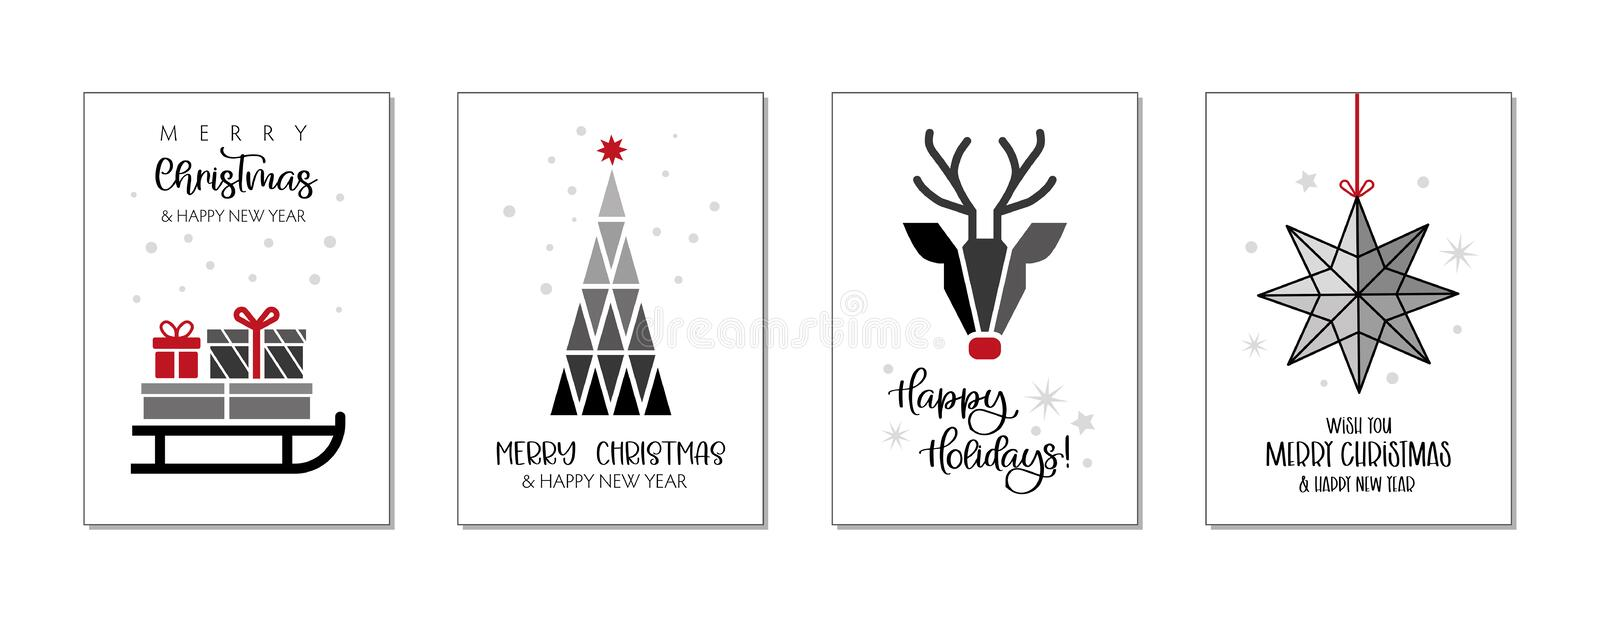 Set of christmas and happy new year greeting cards vector illustration stock illustration